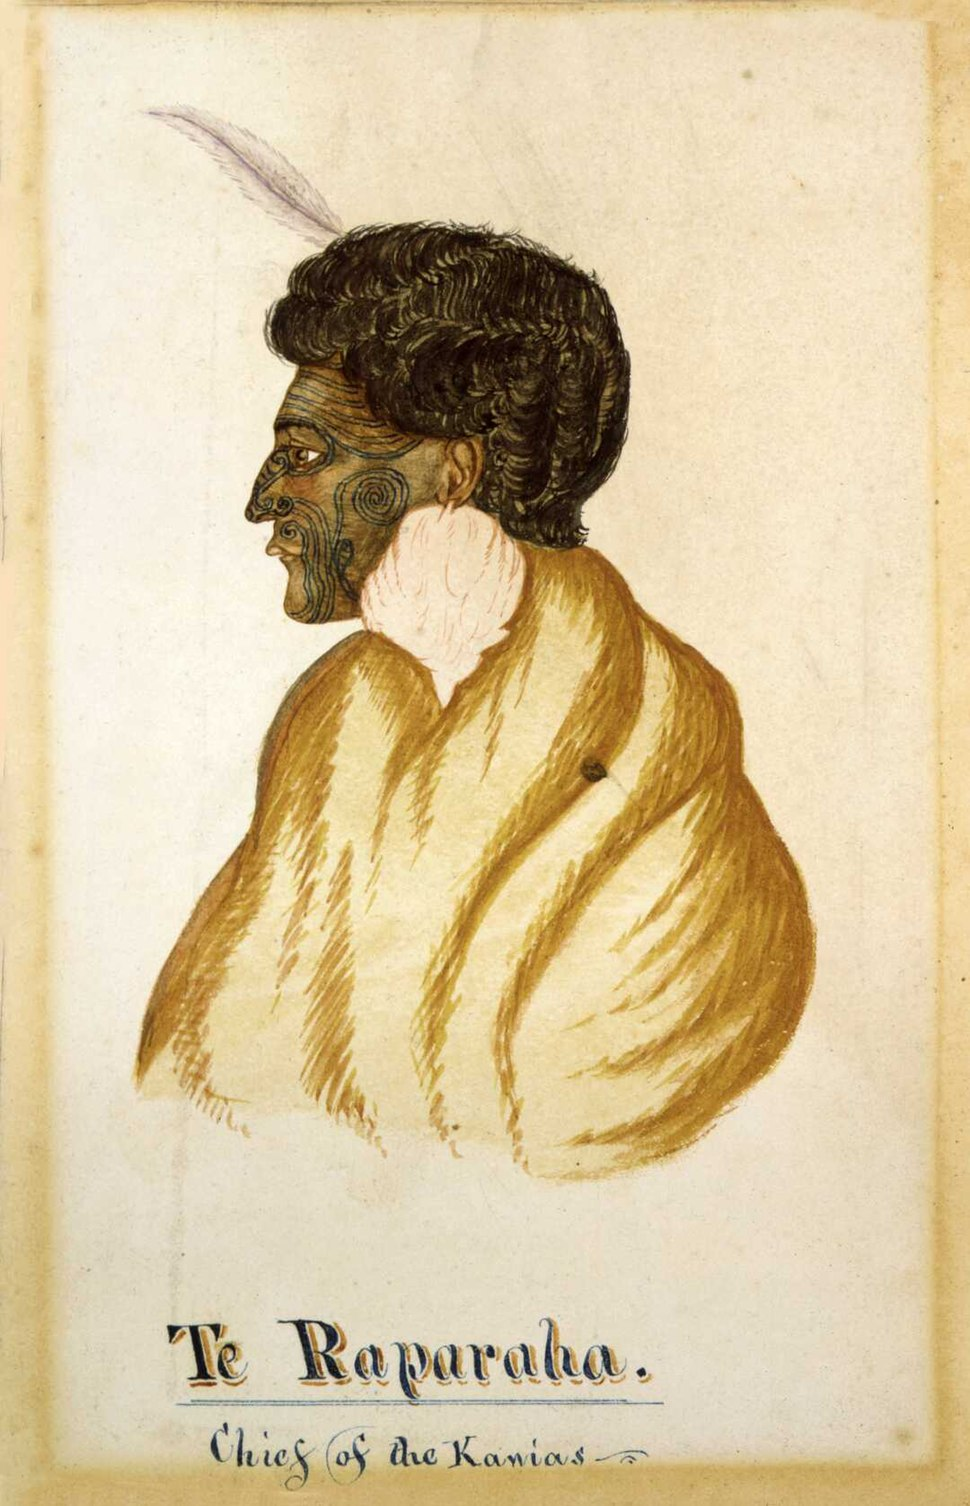 Te Raparaha, chief of the Kawias, watercolour by R. Hall, c. 1840s